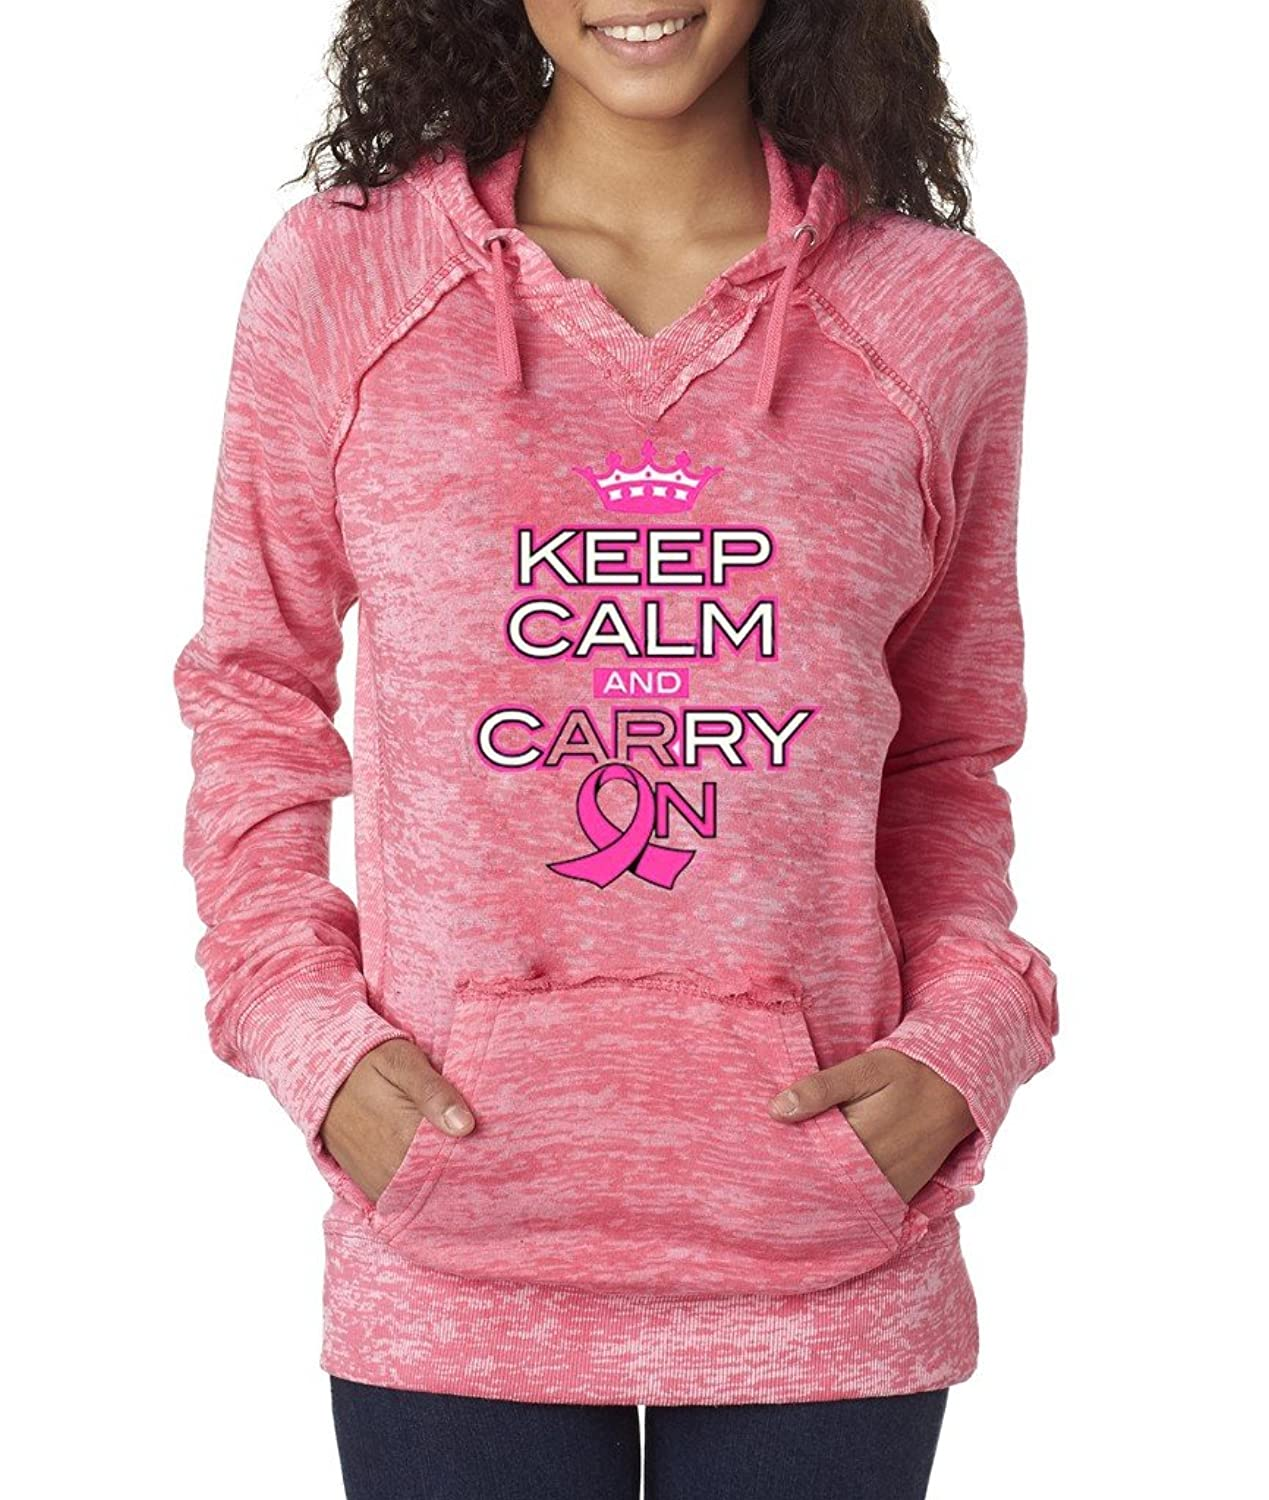 hot sale Keep Calm And Fight Back T-shirt Breast Cancer Awareness